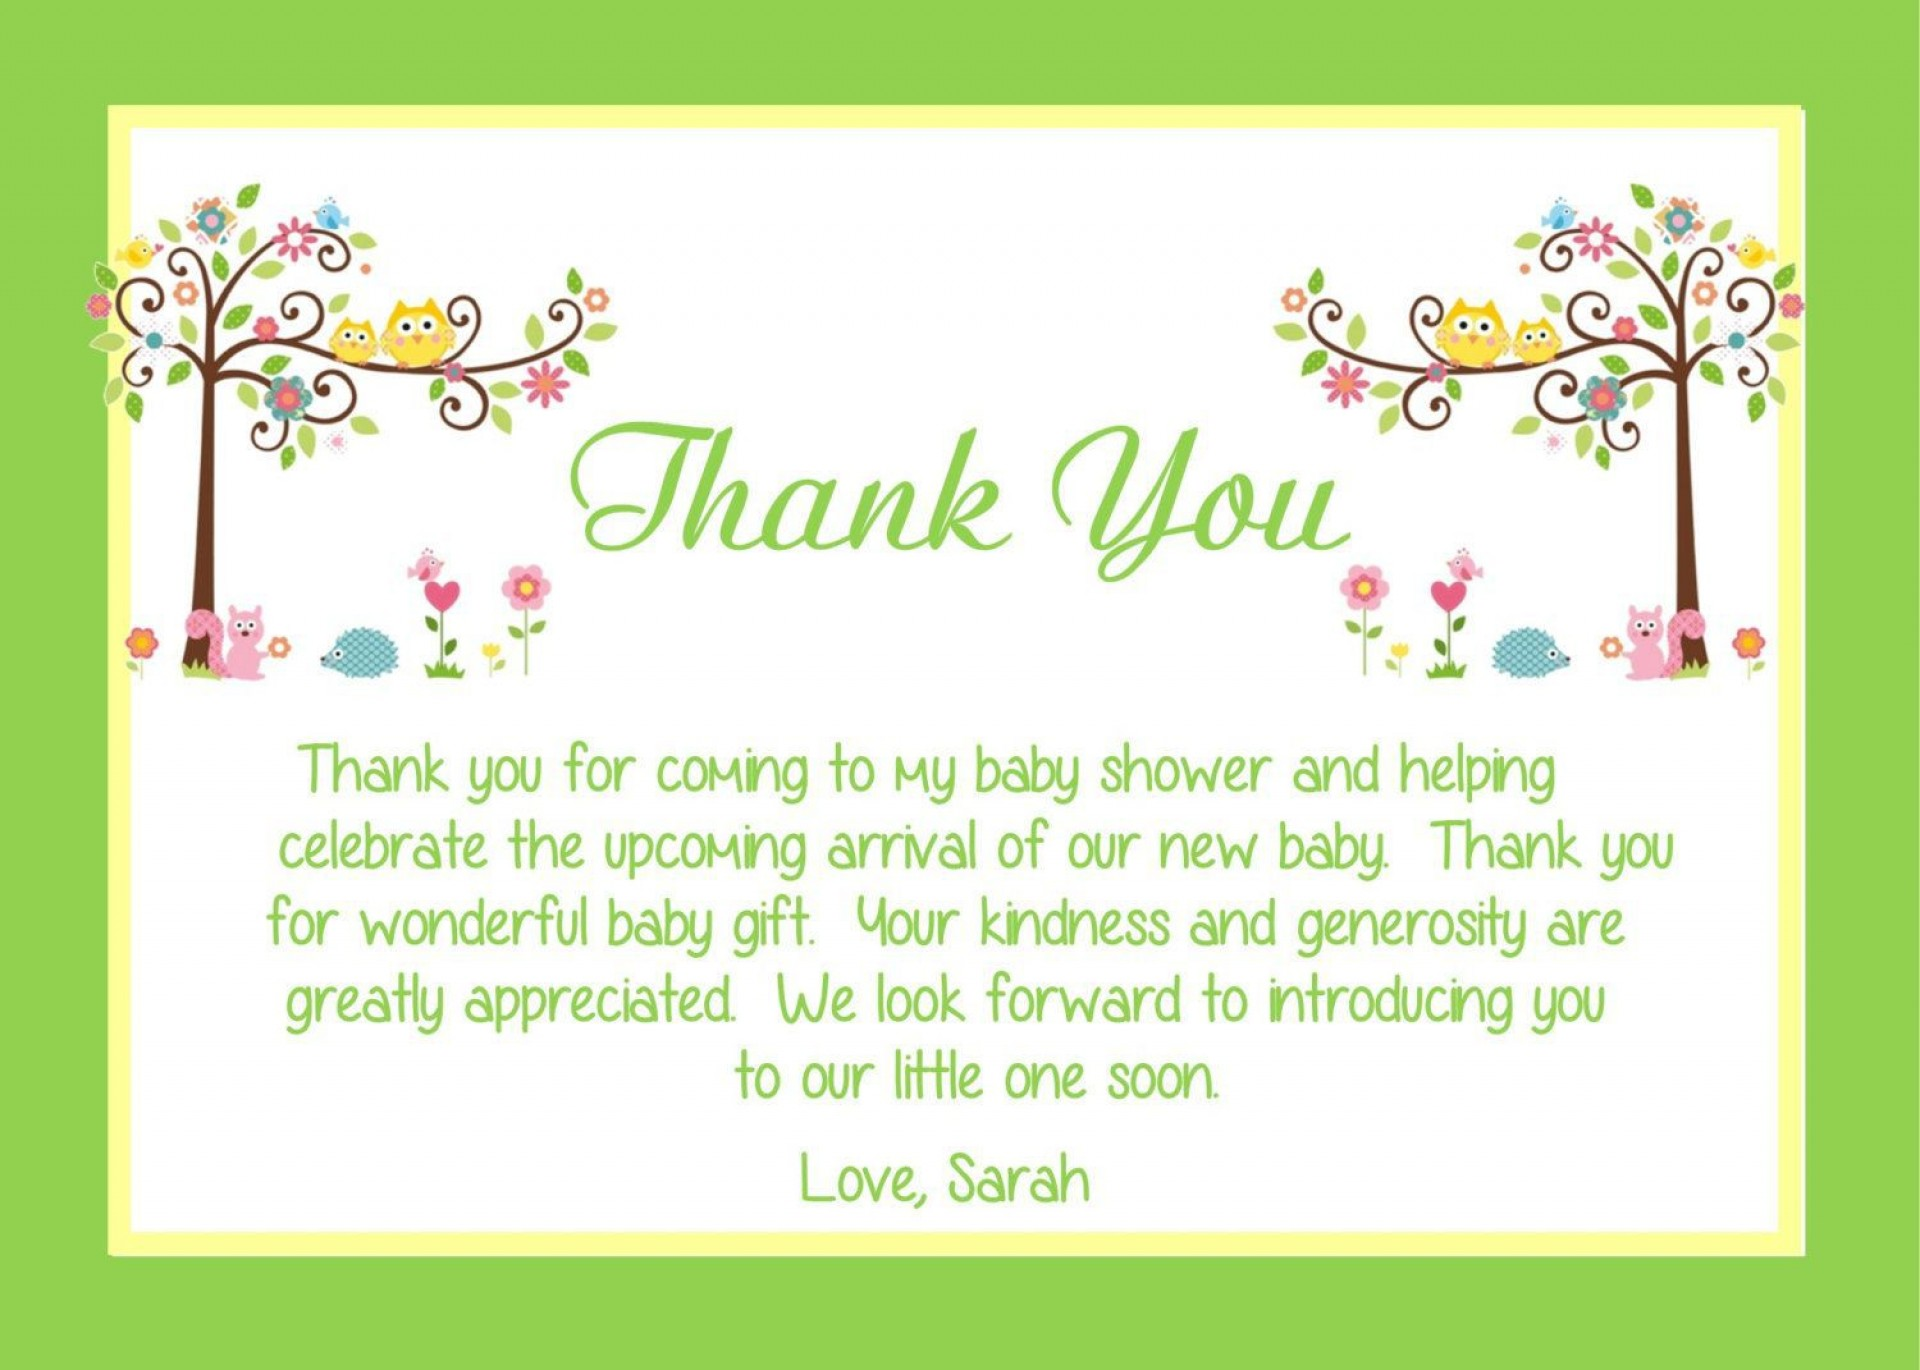 001 Fantastic Thank You Card Wording Baby Shower Gift High Resolution  For Multiple Group1920